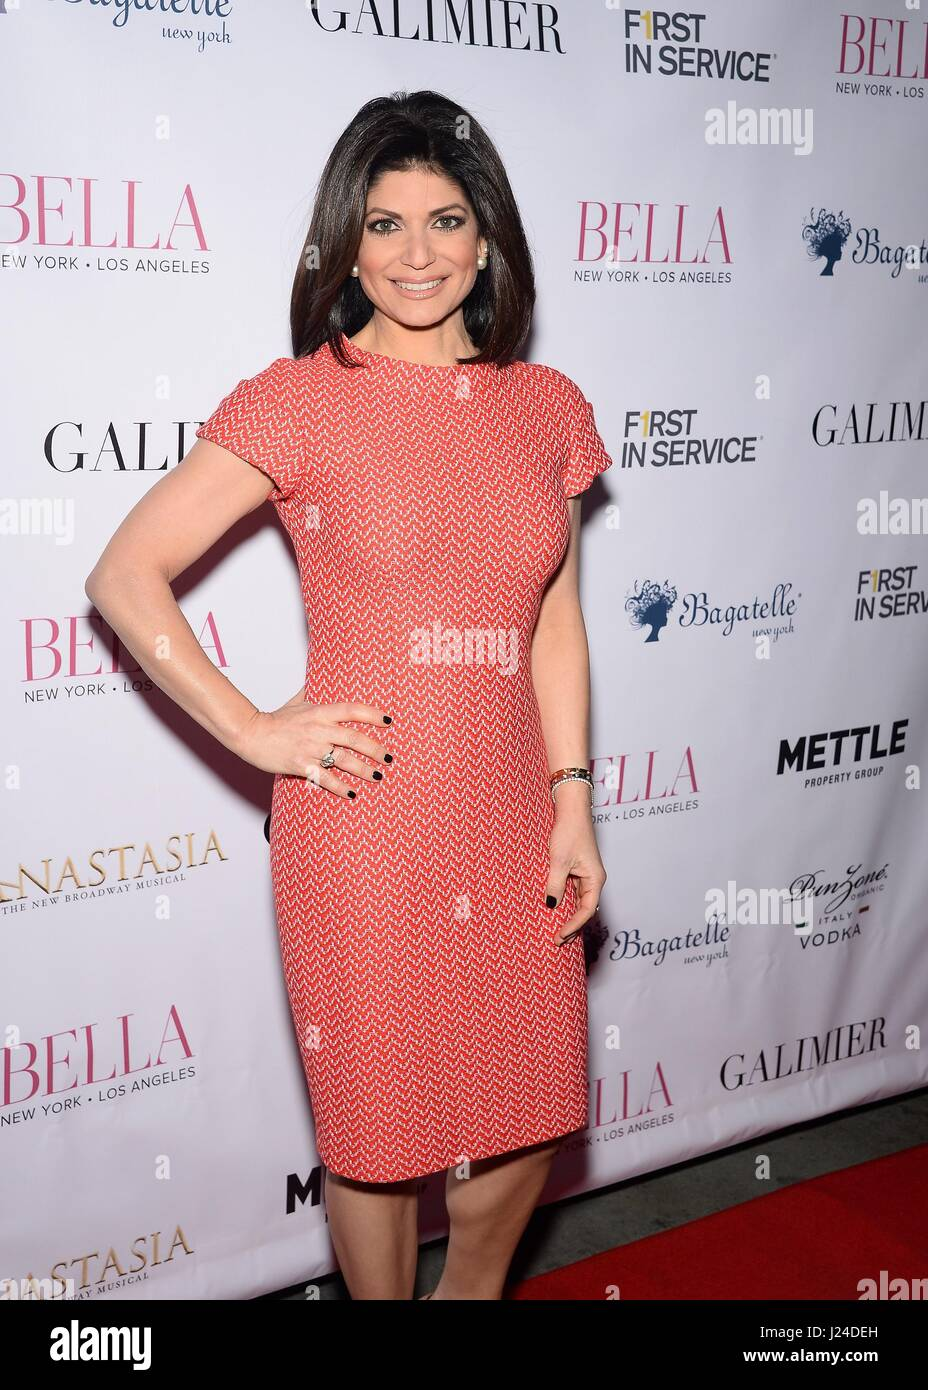 New York, NY, USA. 24th Apr, 2017. Tamsen Fadal at arrivals for BELLA New York Spring Issue Cover Party, Bagatelle, Stock Photo